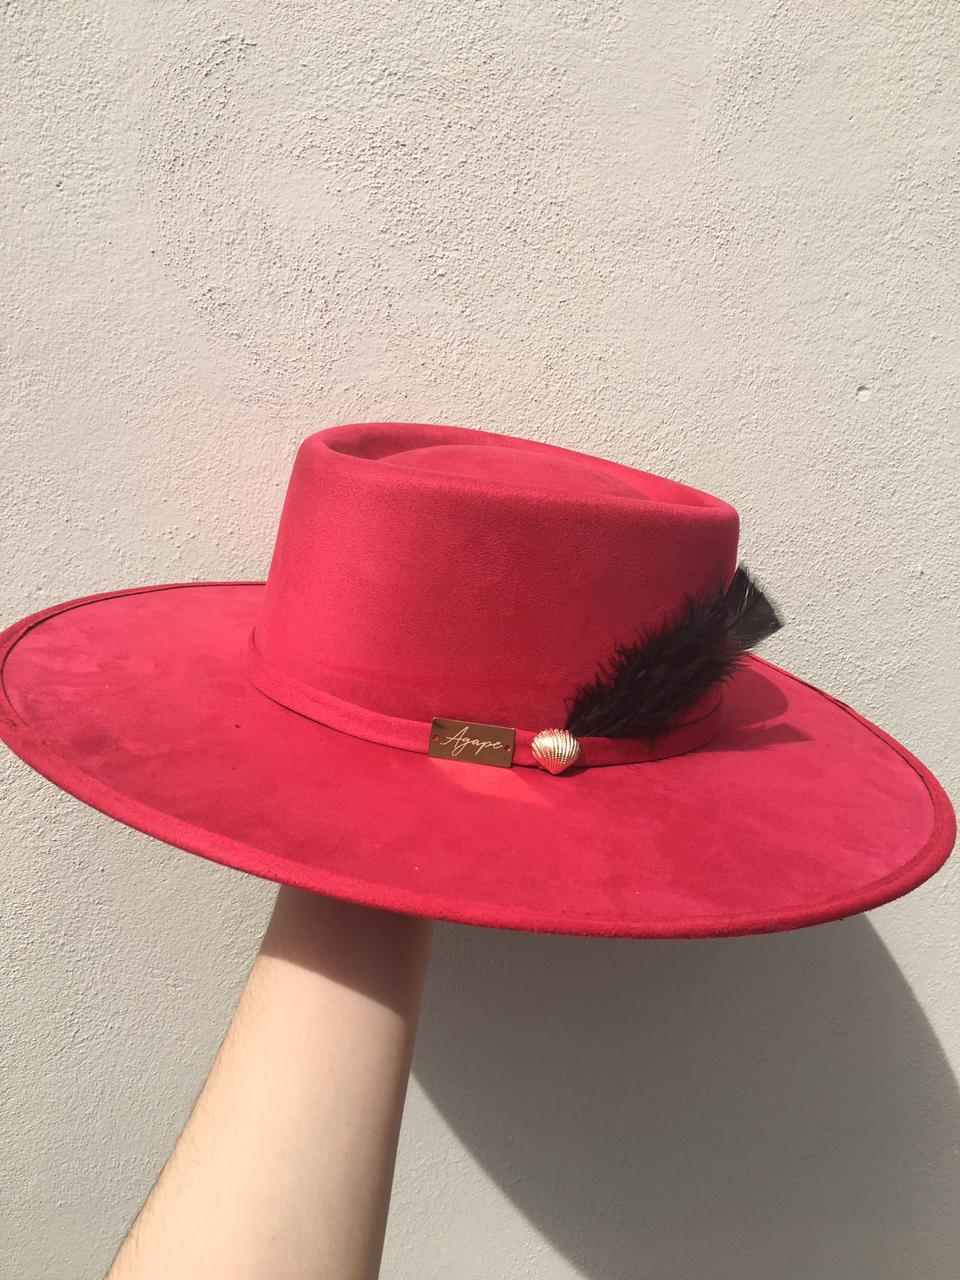 Indiana ala Recta Hat - Red w/ Feathers